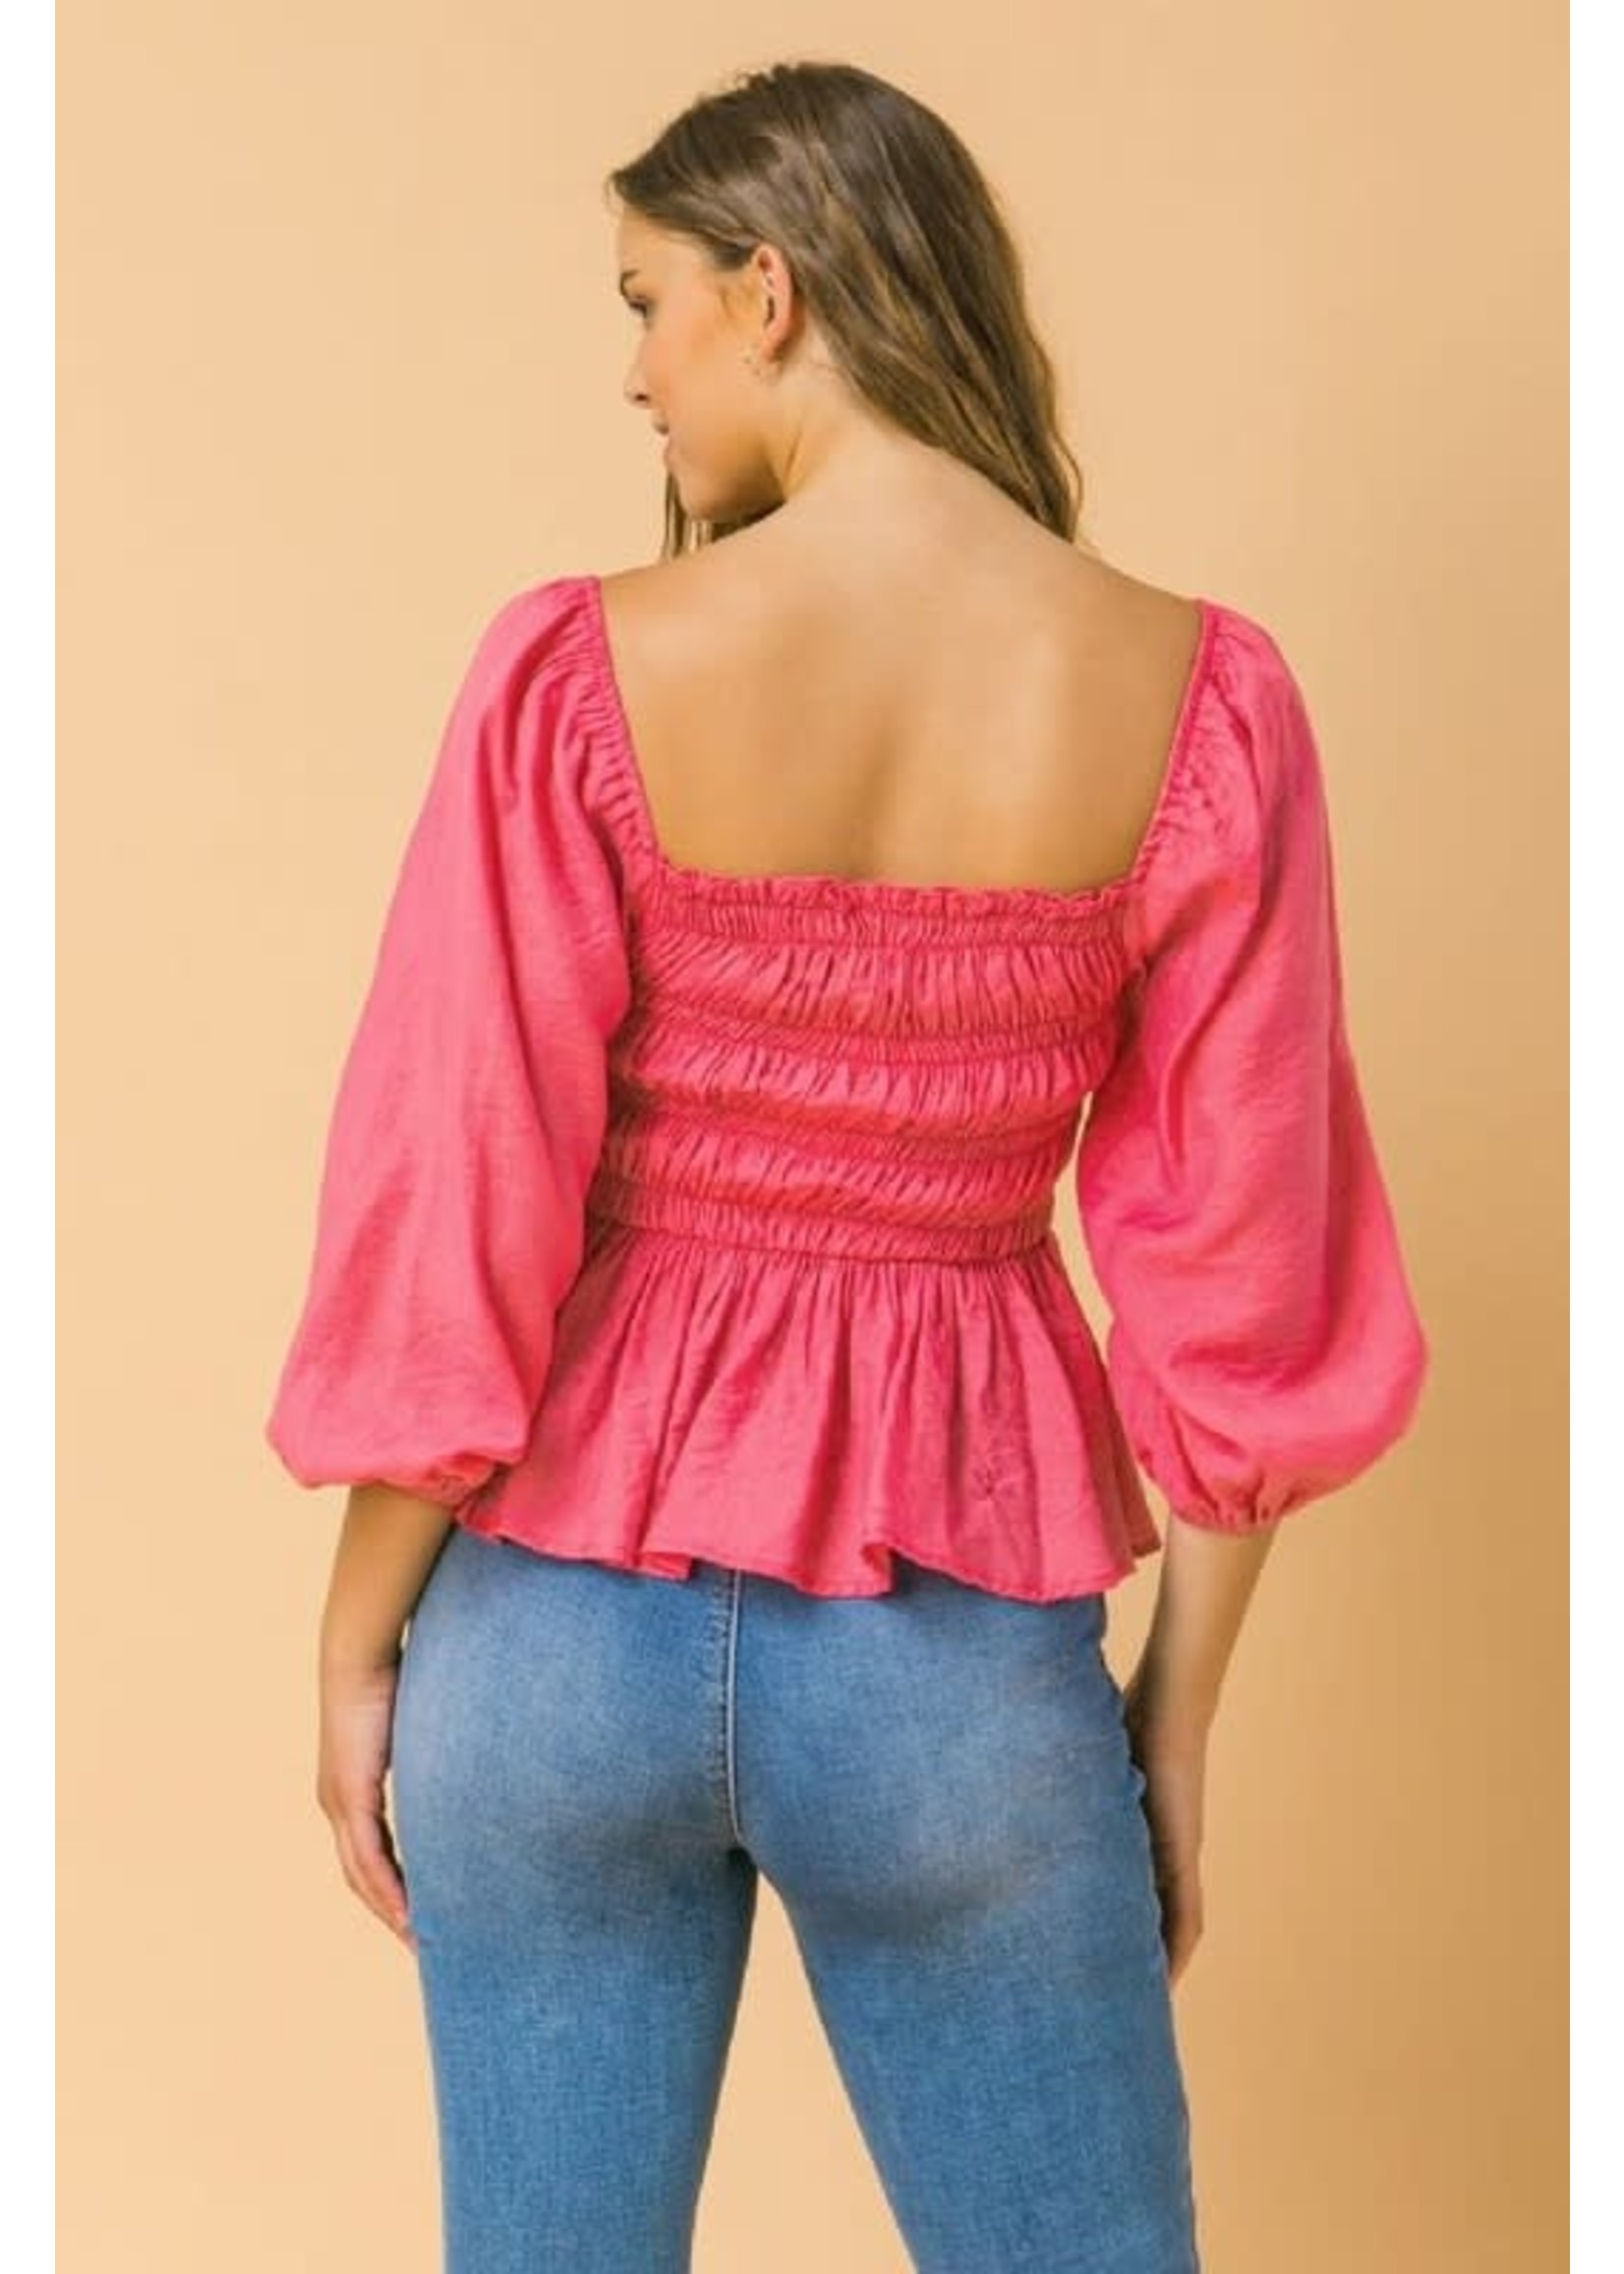 Flying Tomato Smocked Square Neck Peplum Top - AT1961